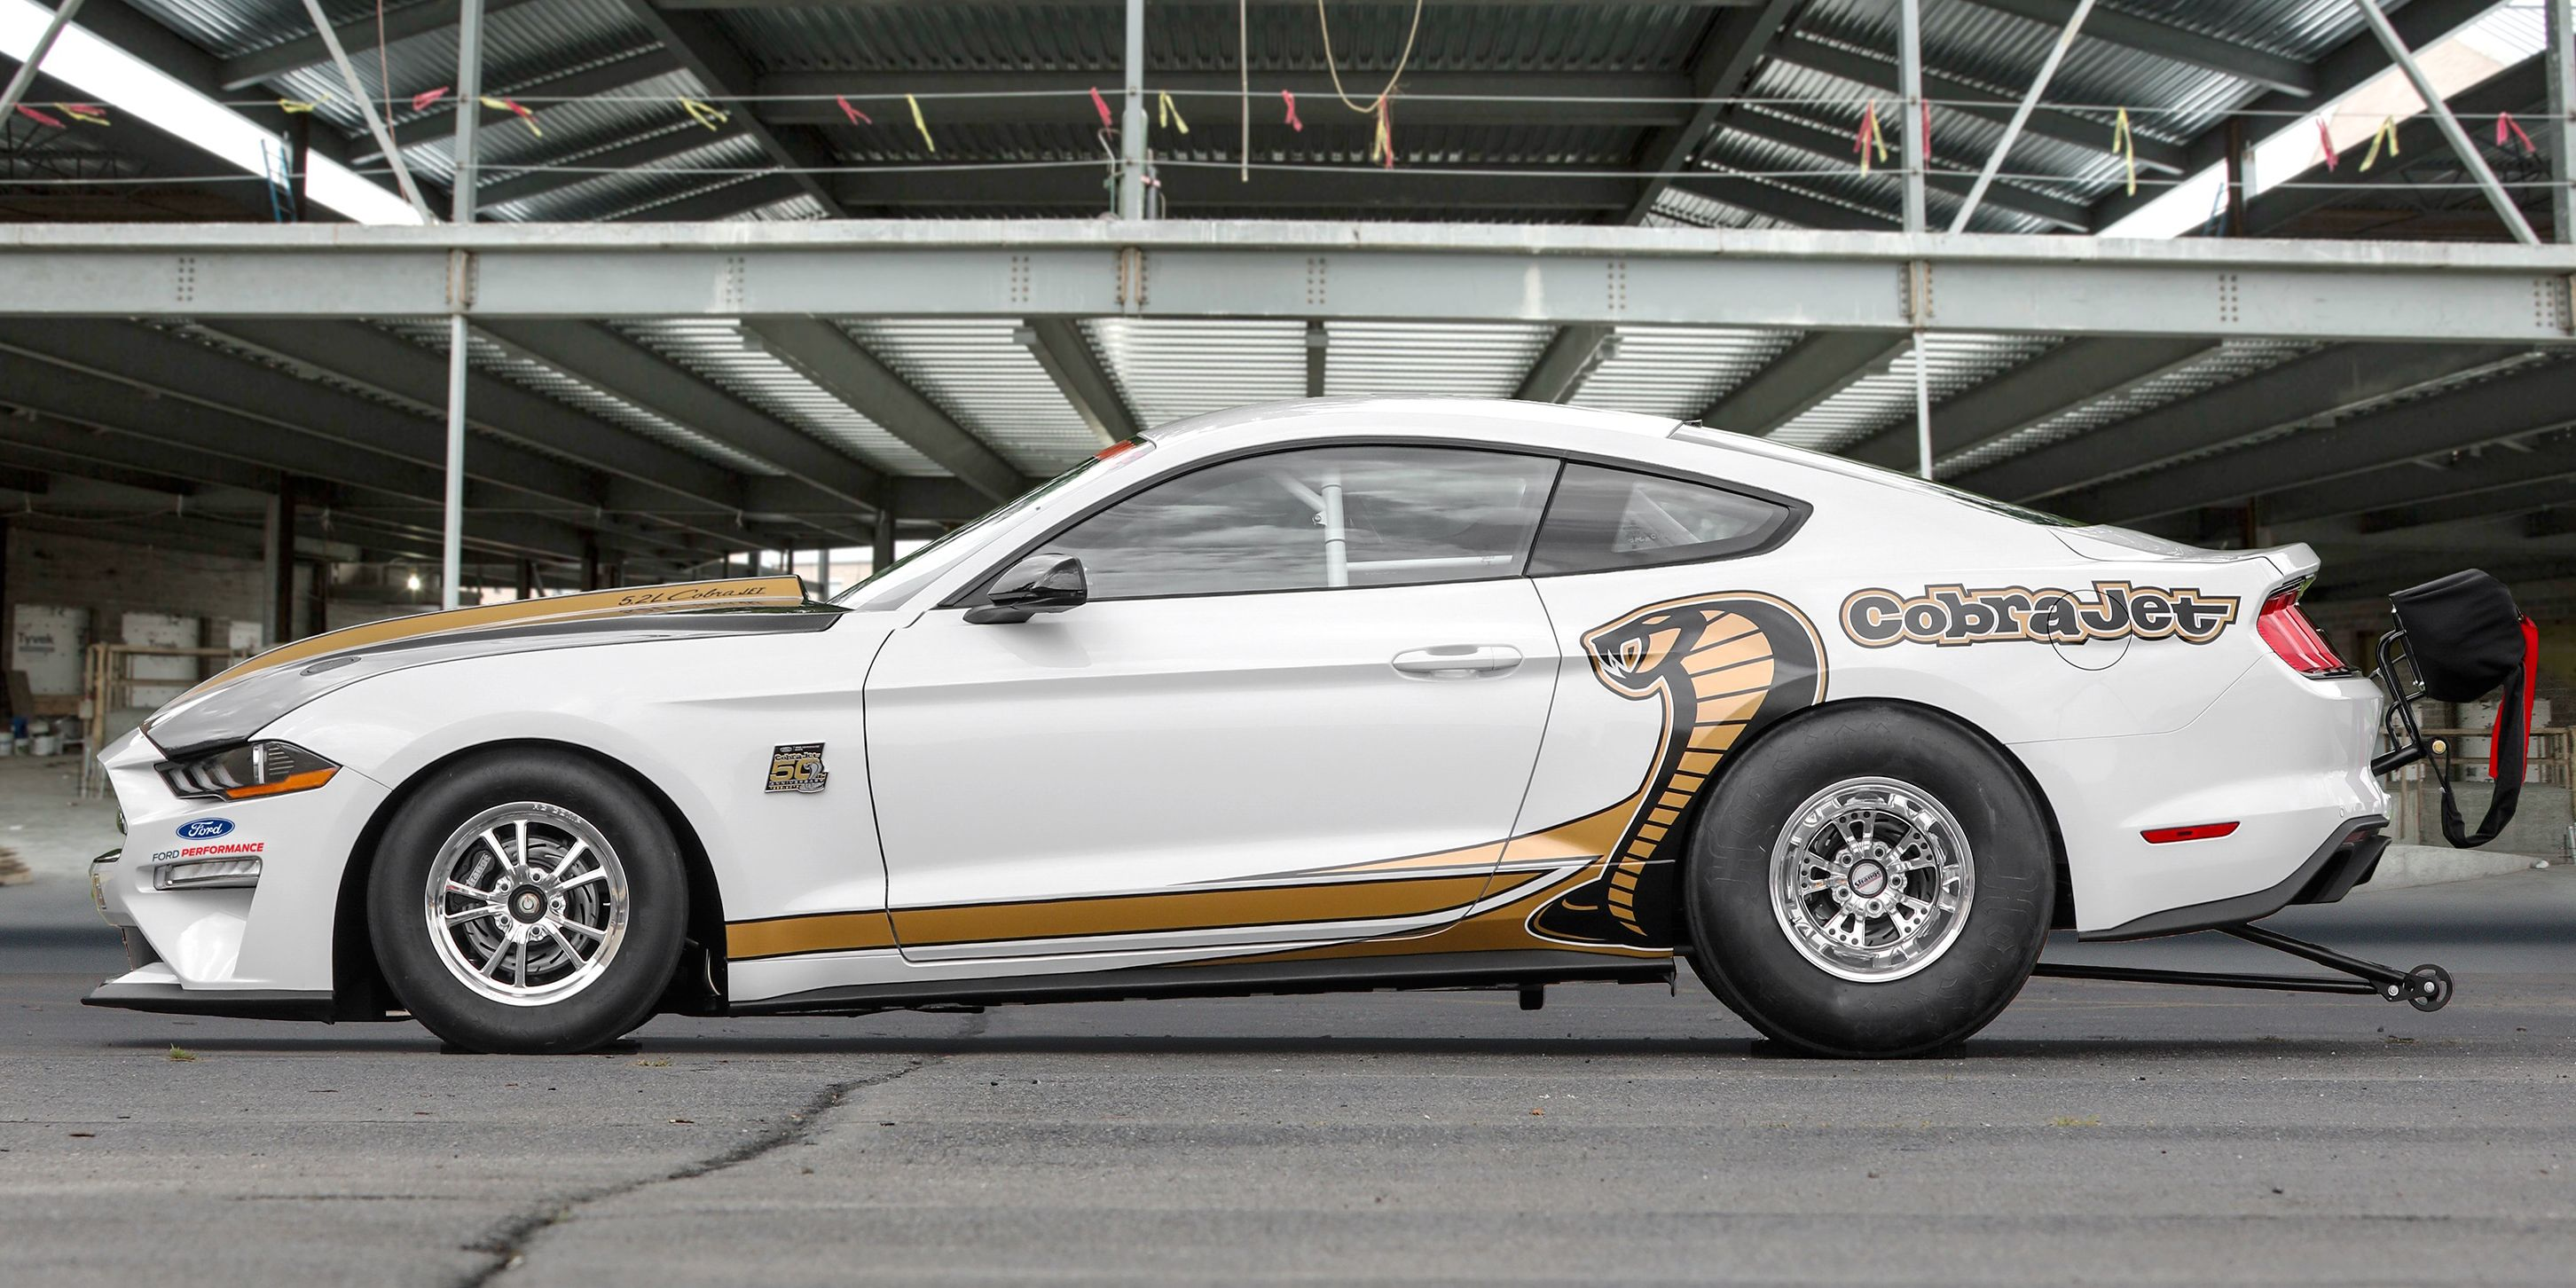 The new ford mustang cobra jet is an eight second drag monster